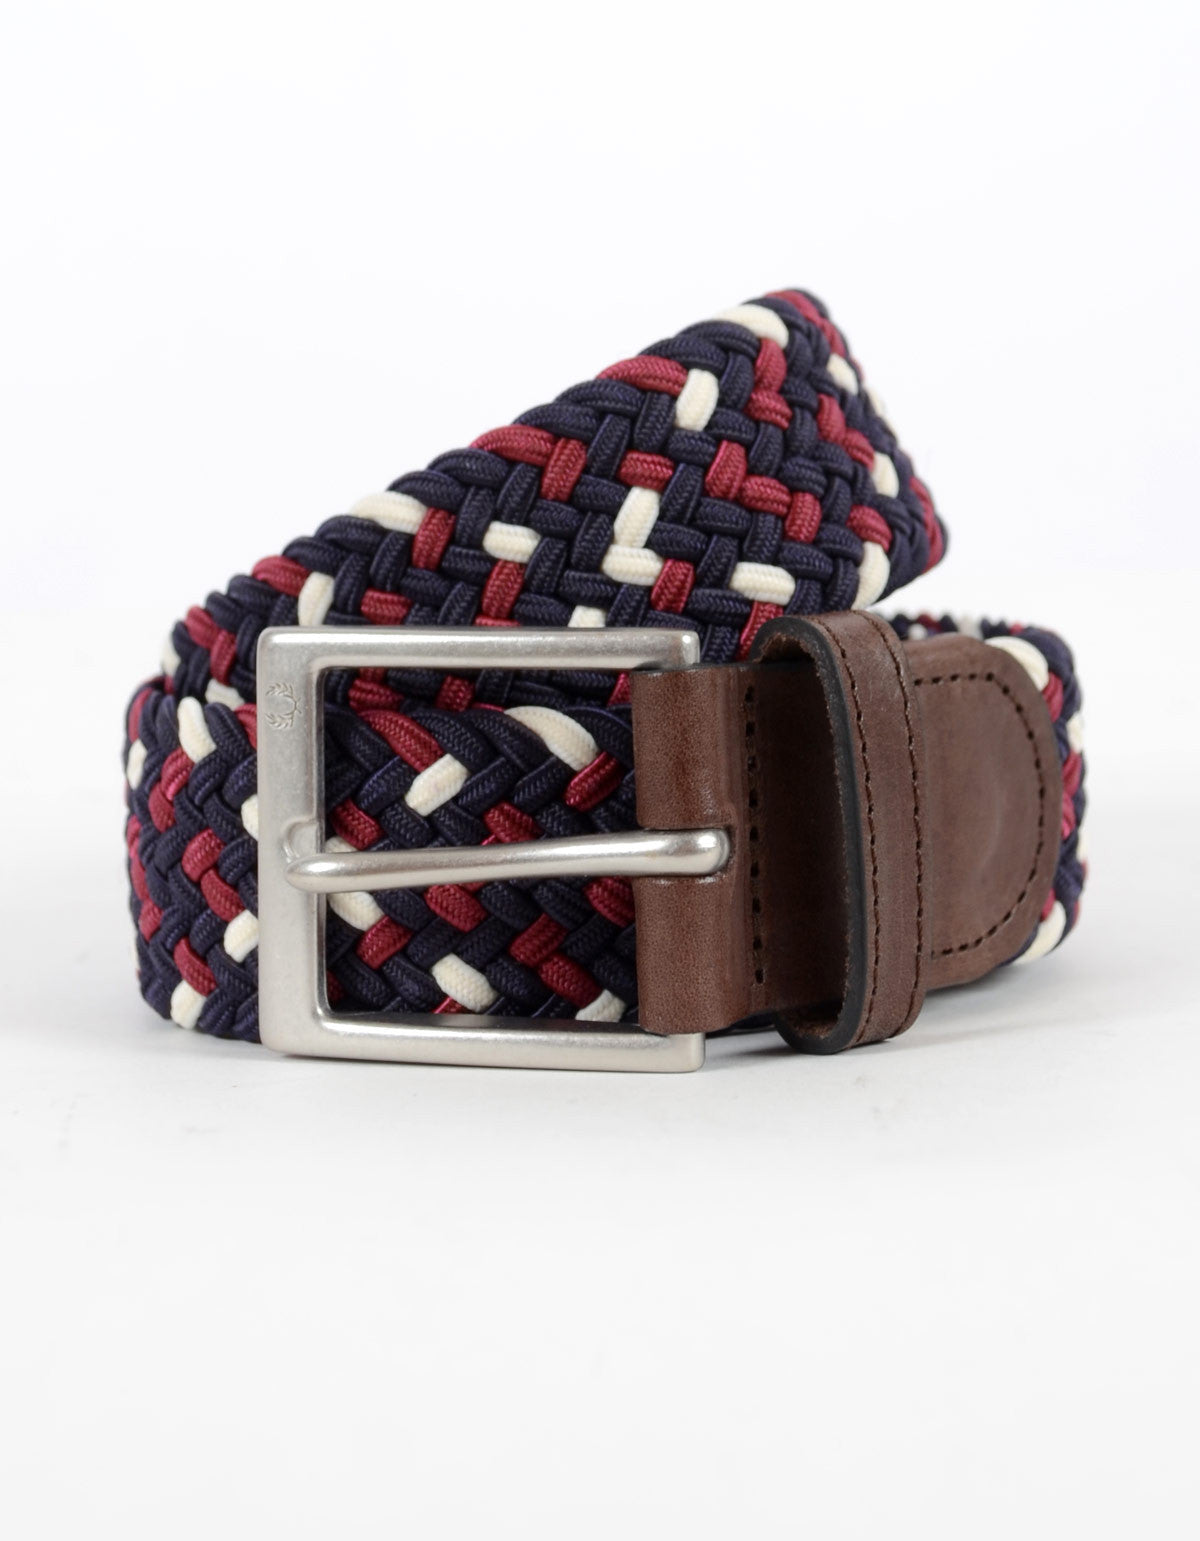 Fred Perry Flecked Woven Belt Navy Maroon Ecru - Still Life